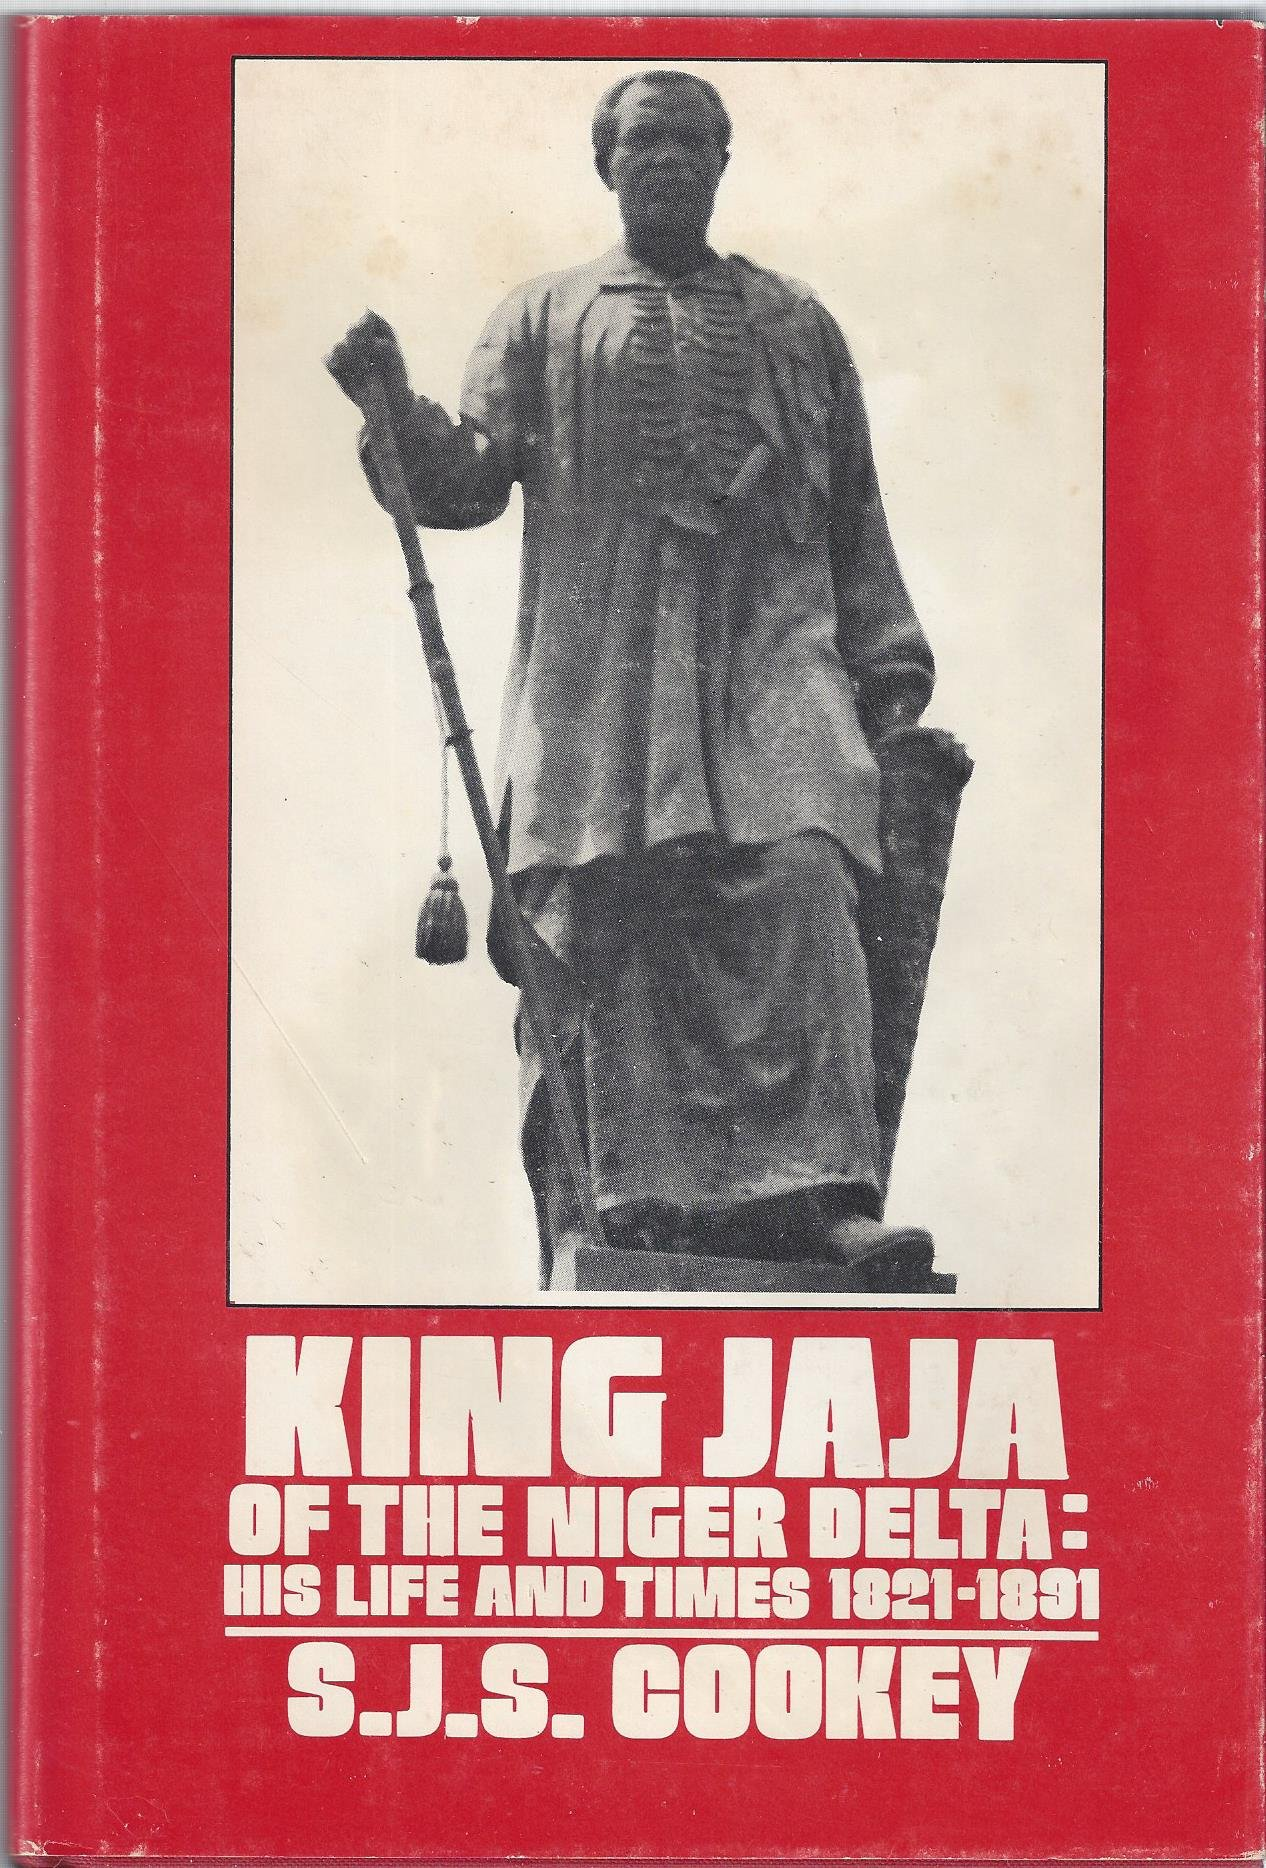 King Jaja of the Niger Delta: His life and times, 1821-1891